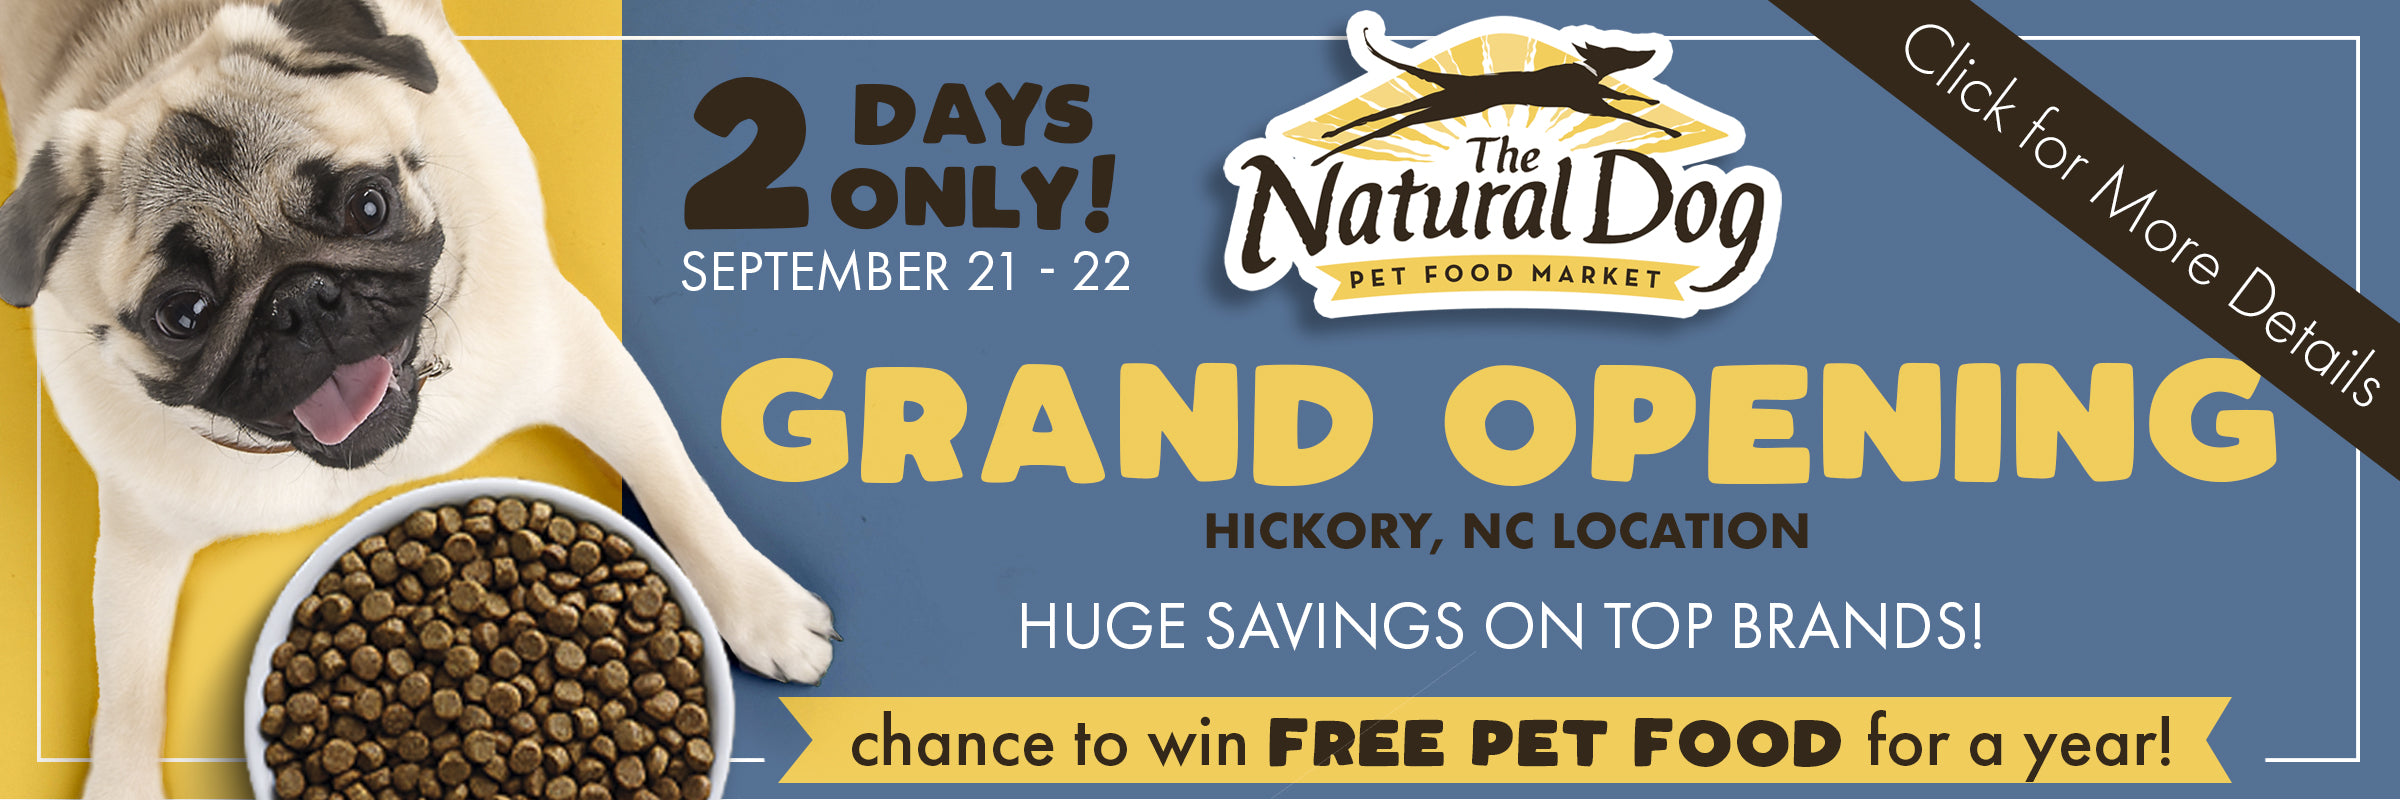 Hickory Grand Opening